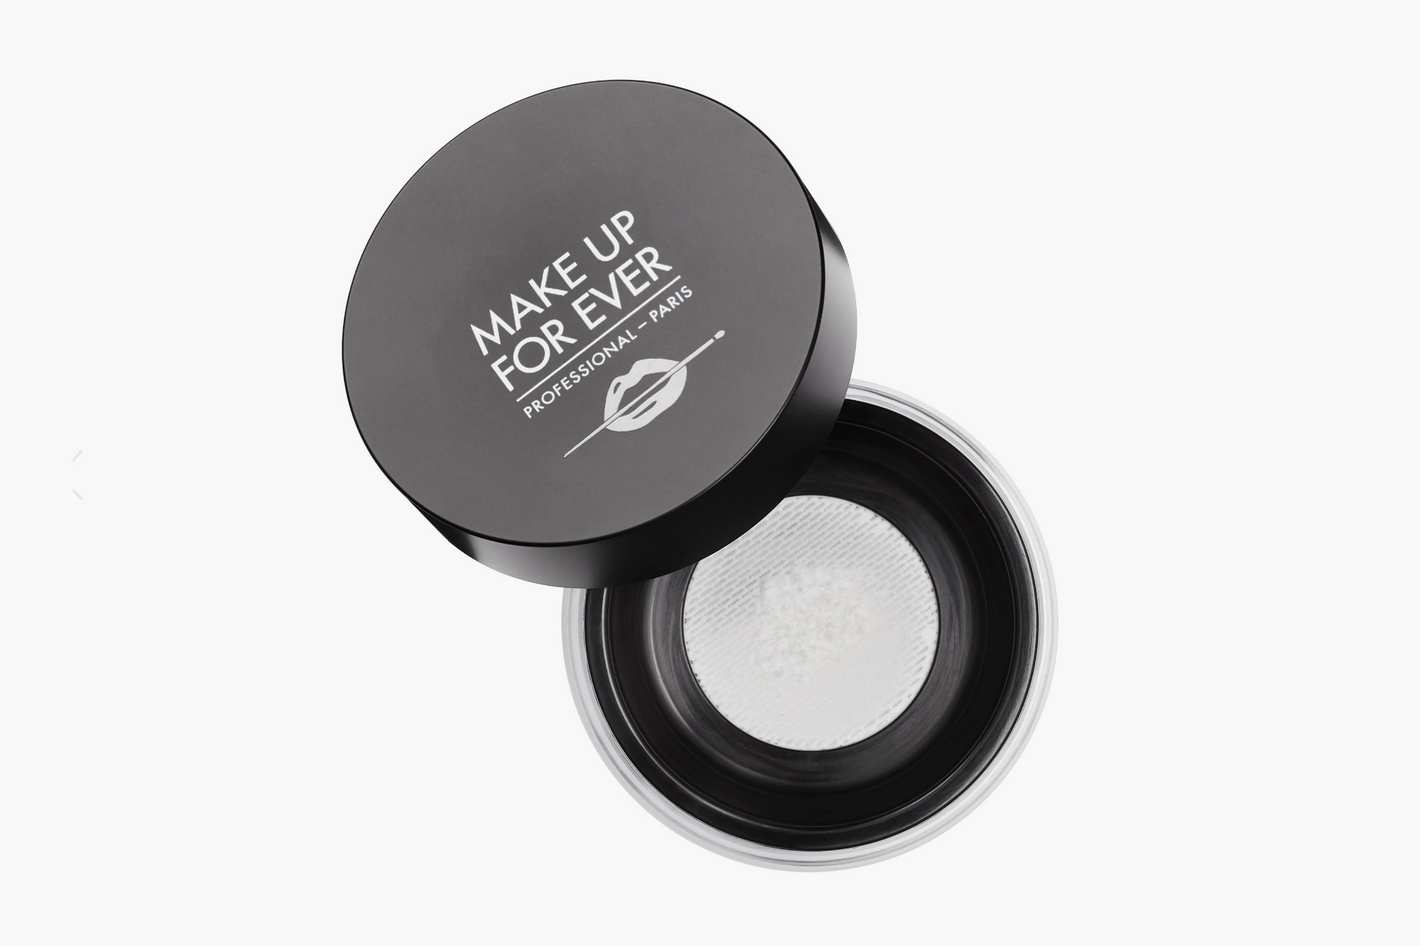 Make Up For Ever Ultra HD Microfinishing Loose Powder, 0.14 oz